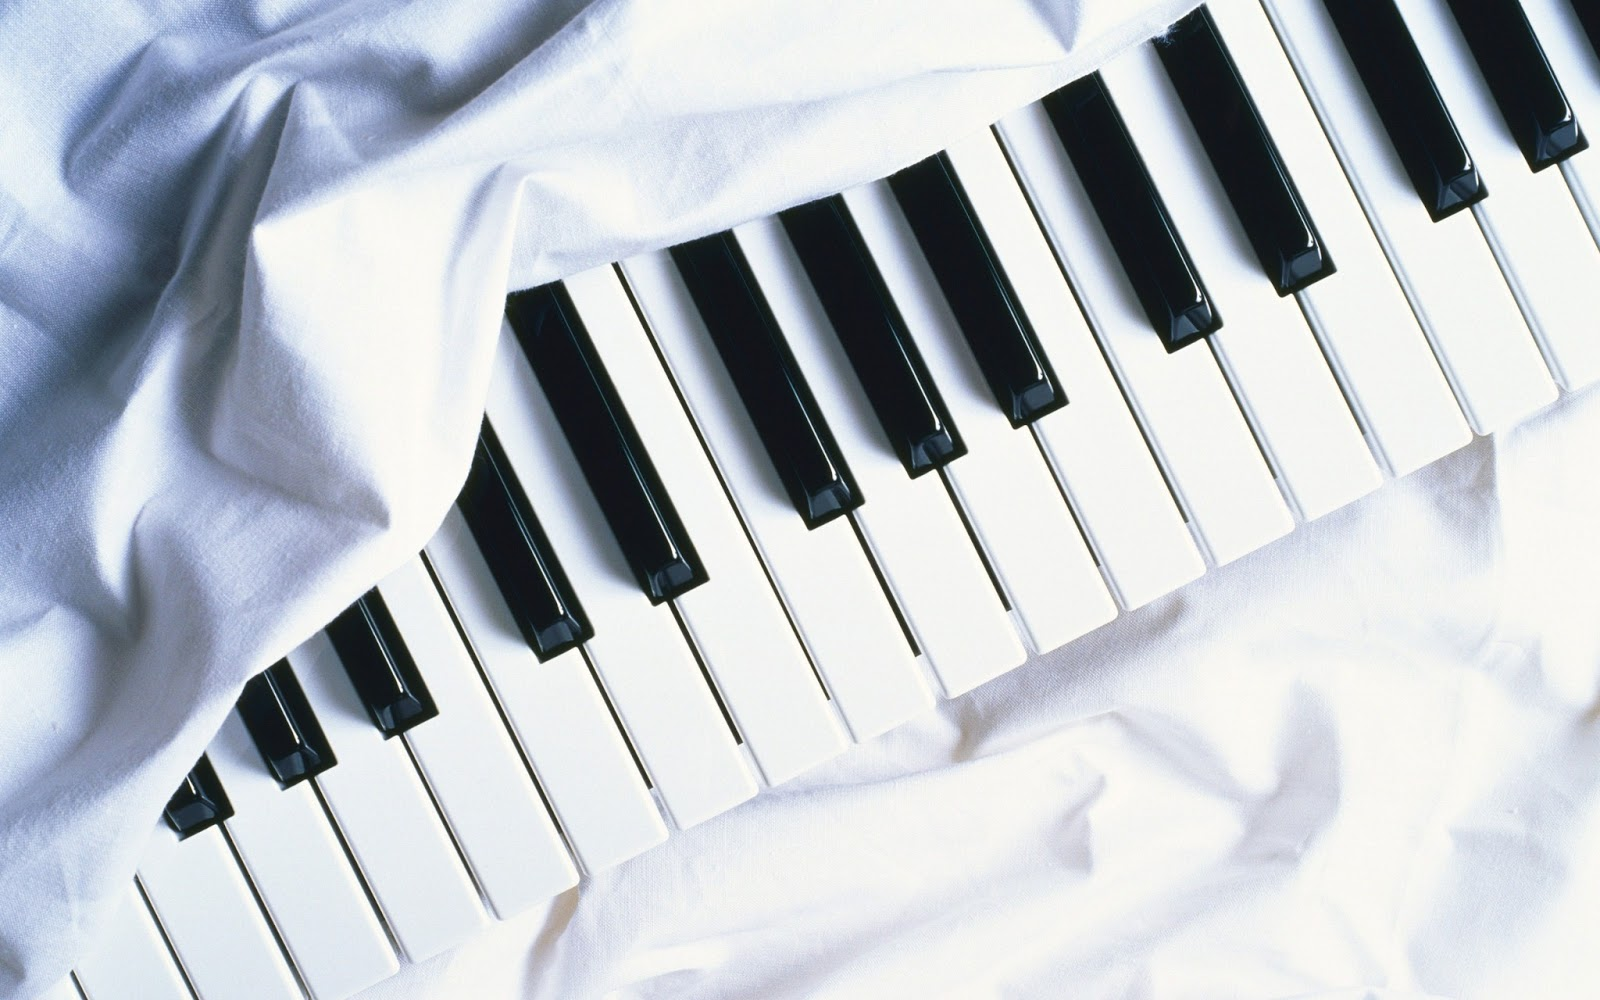 Most Inspiring Wallpaper Music Dual Screen - piano-music+hd+images  You Should Have_624334.jpg